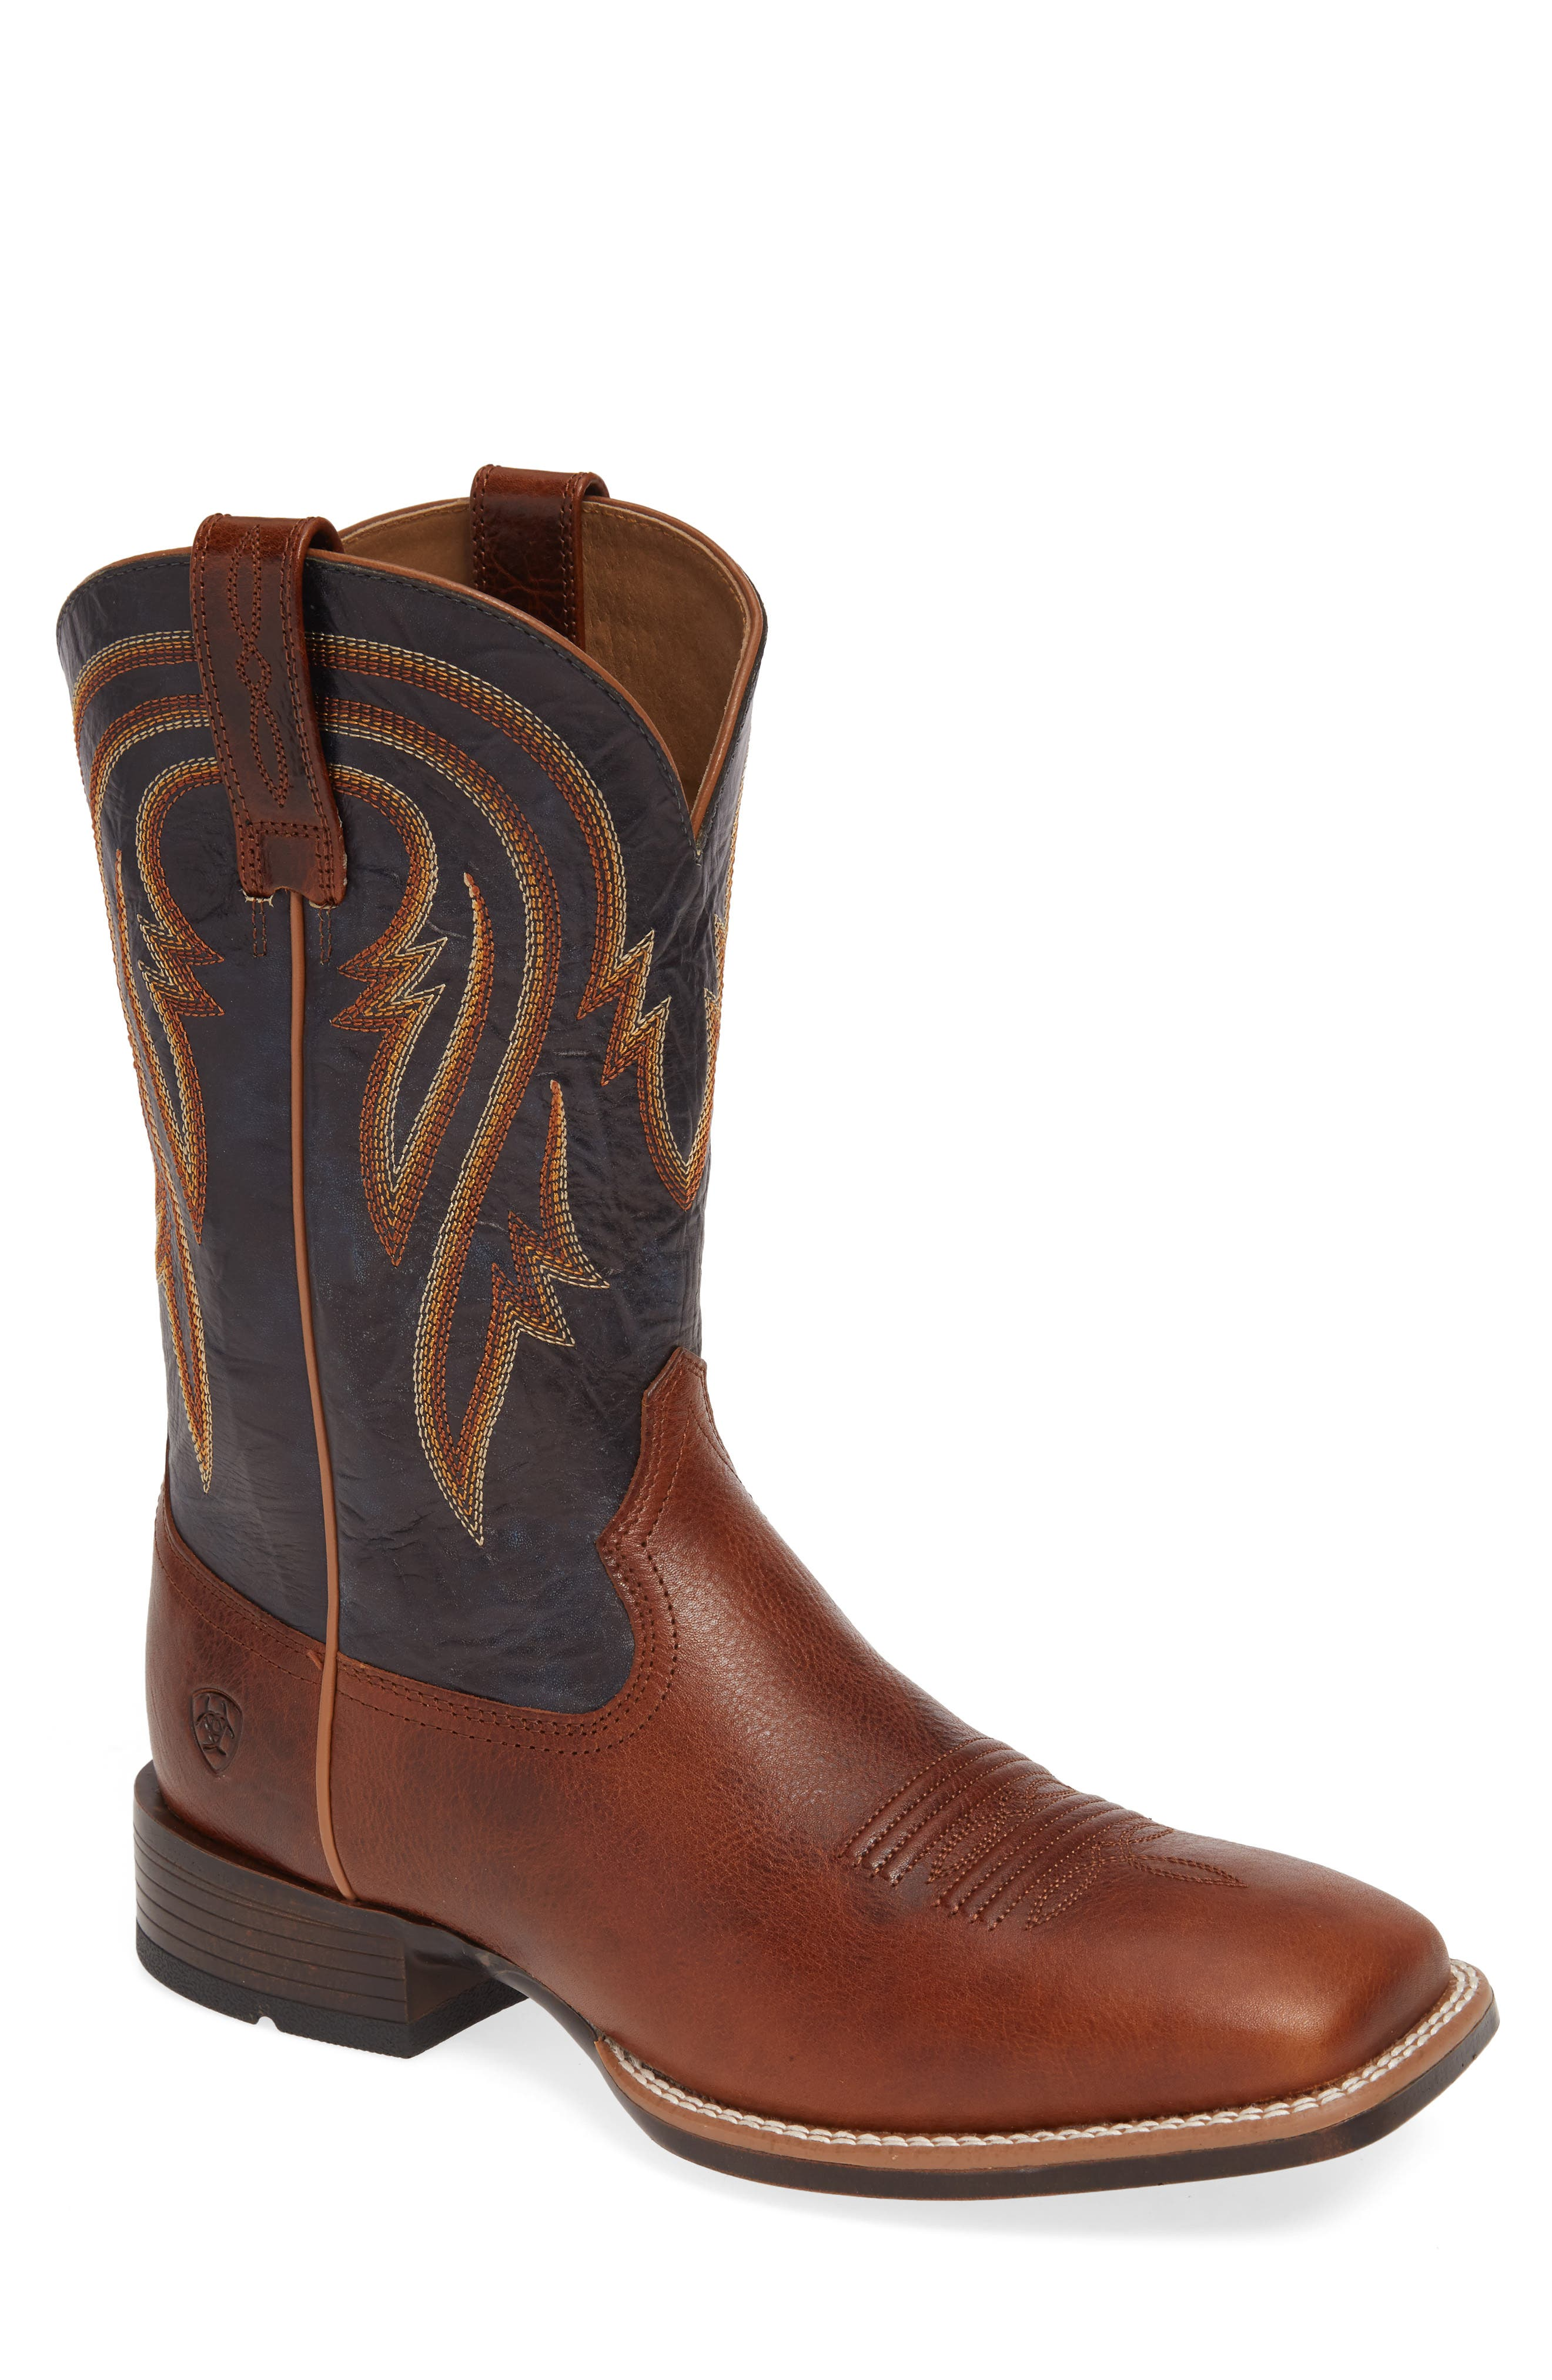 Ariat Plano Cowboy Boot- Brown